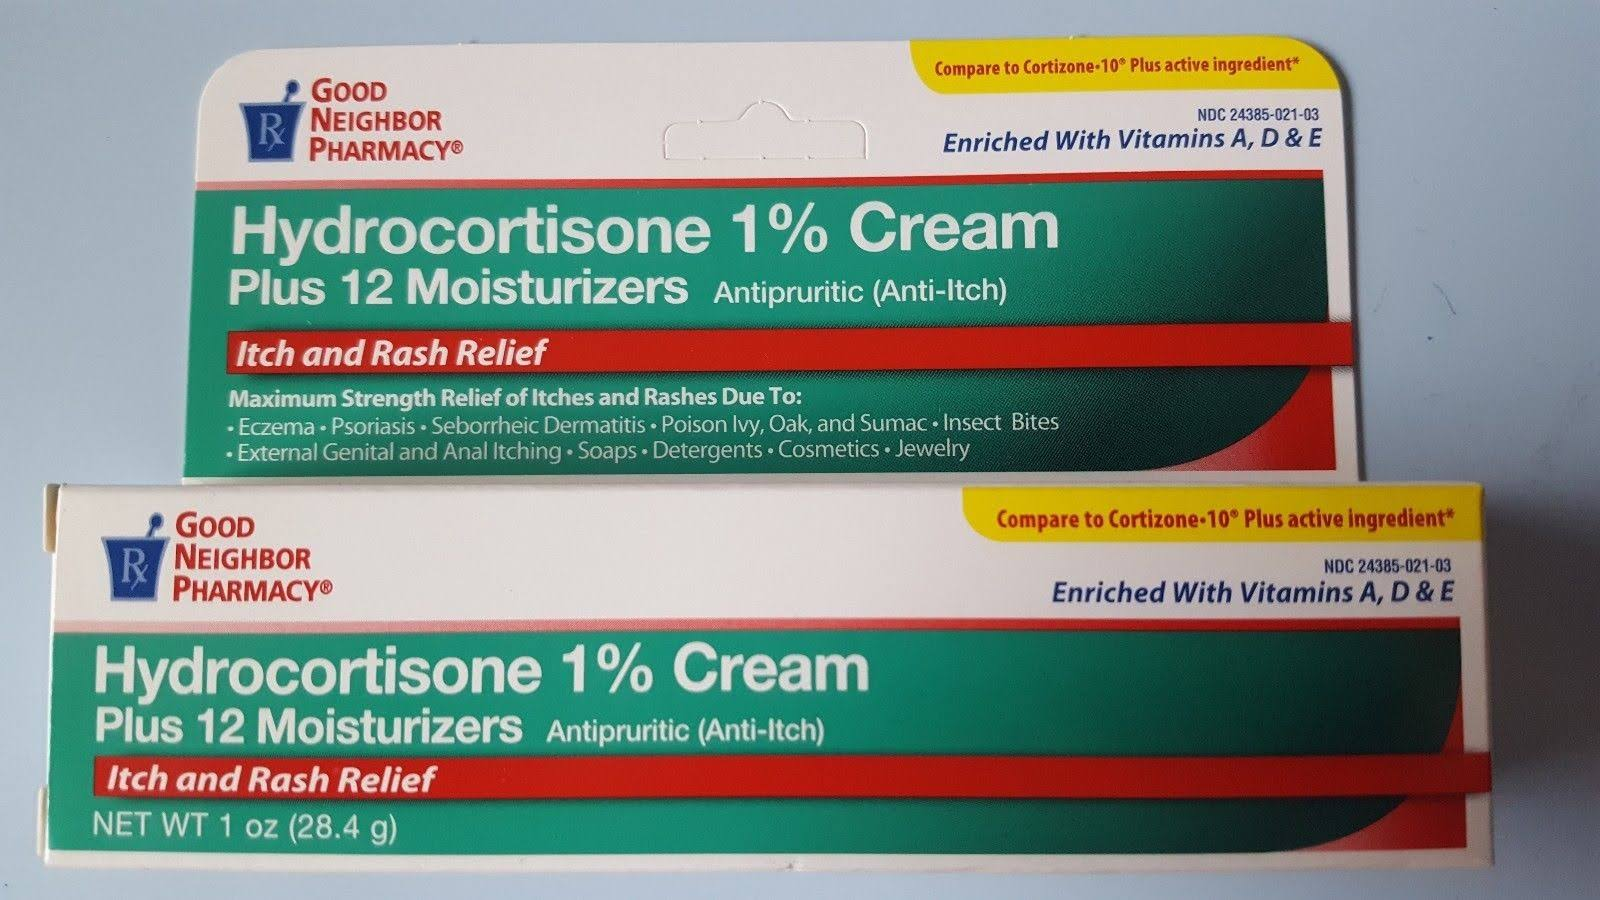 GNP Anti-Itch Cream Hydrocortisone 1% Plus 12 Moisturizer 1oz